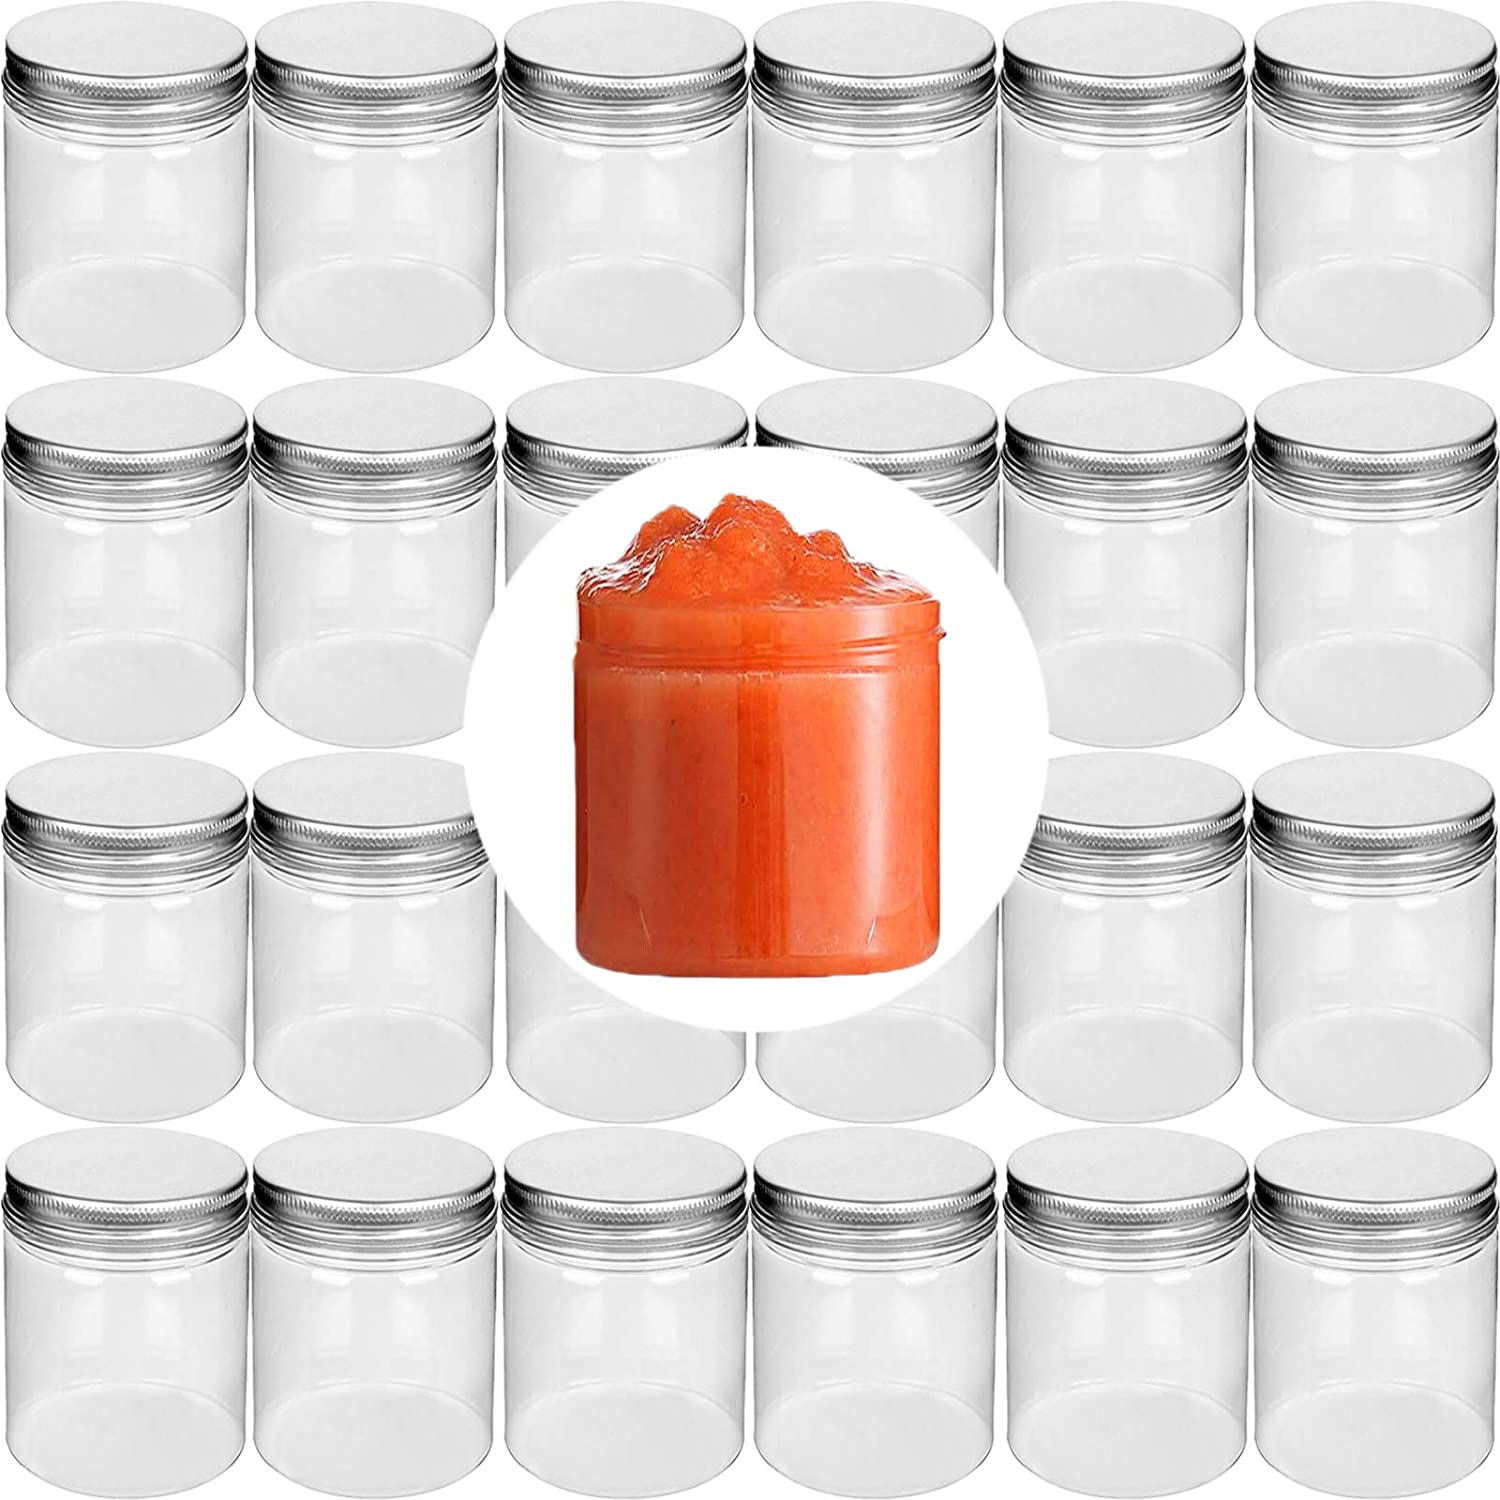 24Pack 6 oz Small Plastic Jars with Lids, Wide Mouth Food Storage Jars, Refillable Empty Containers, Small Storage Containers for Slime, Dried Fruit, Nuts, Honey and Seasoning Storage-BPA Free